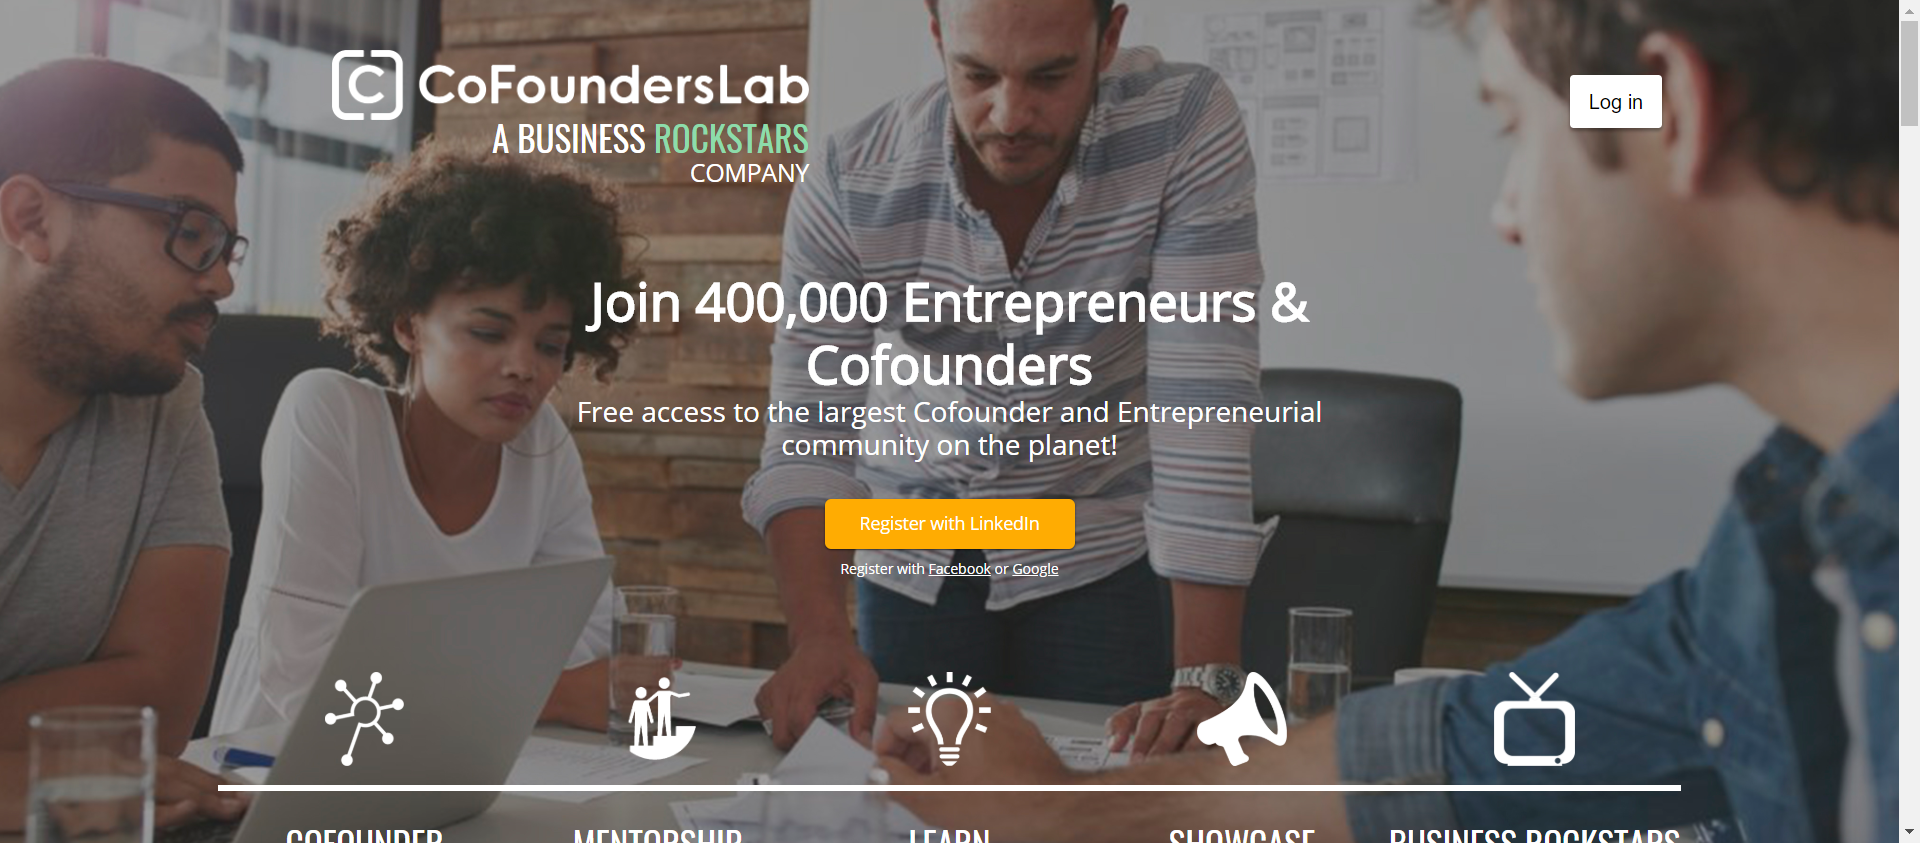 CoFoundersLab website image